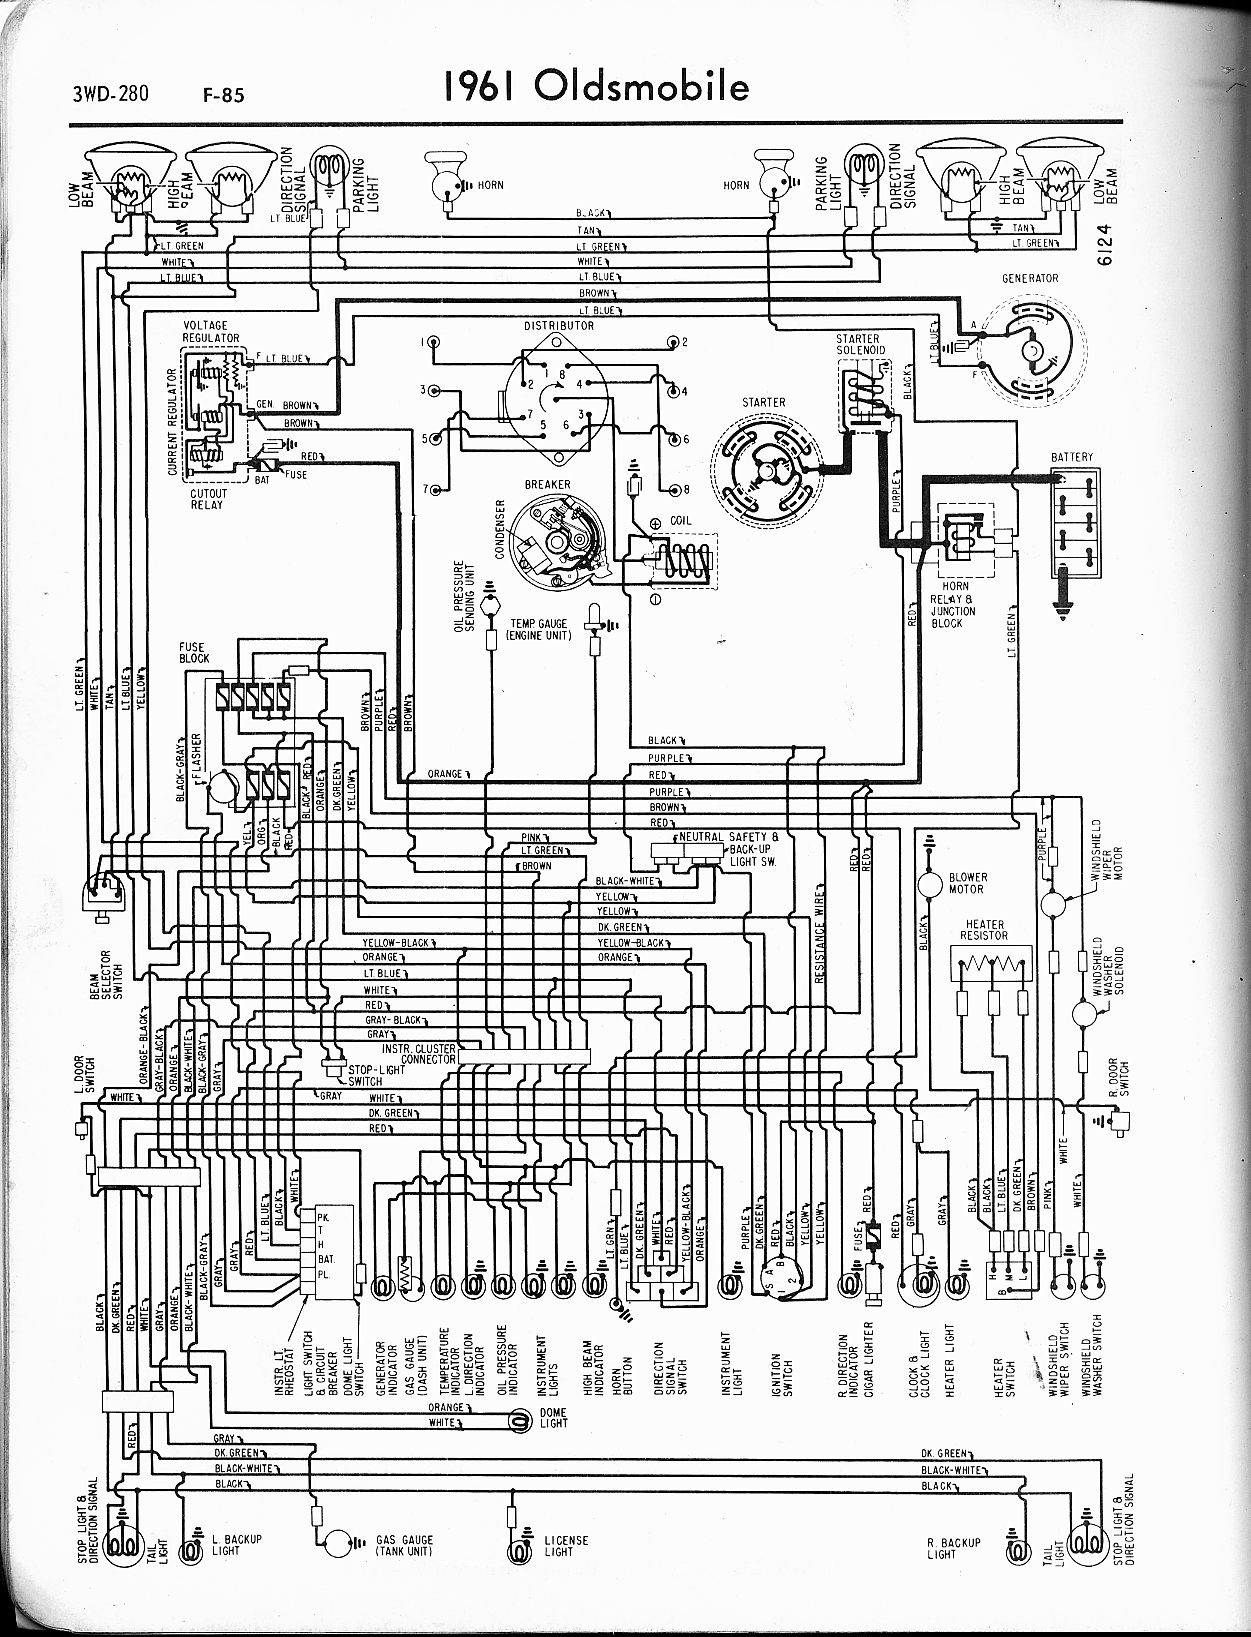 oldsmobile wiring diagrams the old car manual project rh oldcarmanualproject com 2003 Pontiac Grand AM Wiring Diagram 1964 Pontiac Bonneville Wiring-Diagram